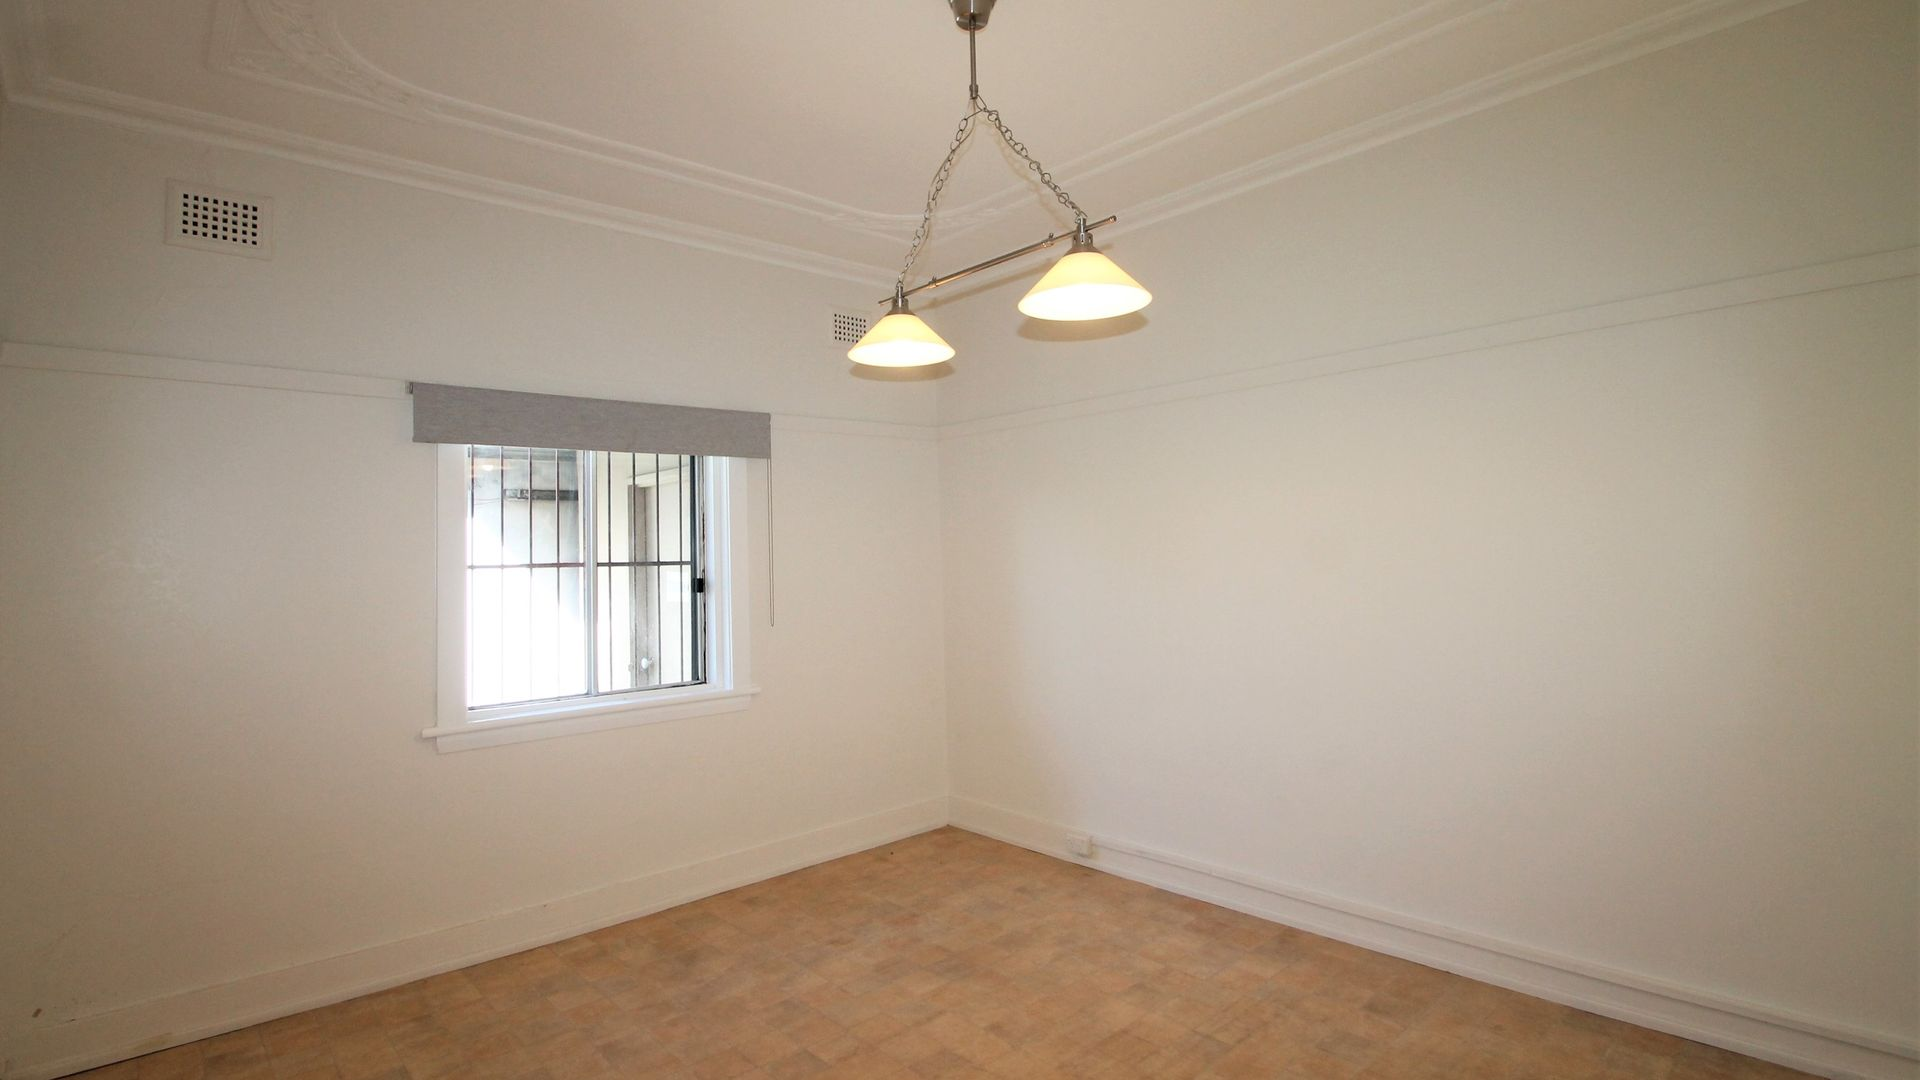 79A Bowden St, Ryde NSW 2112, Image 1